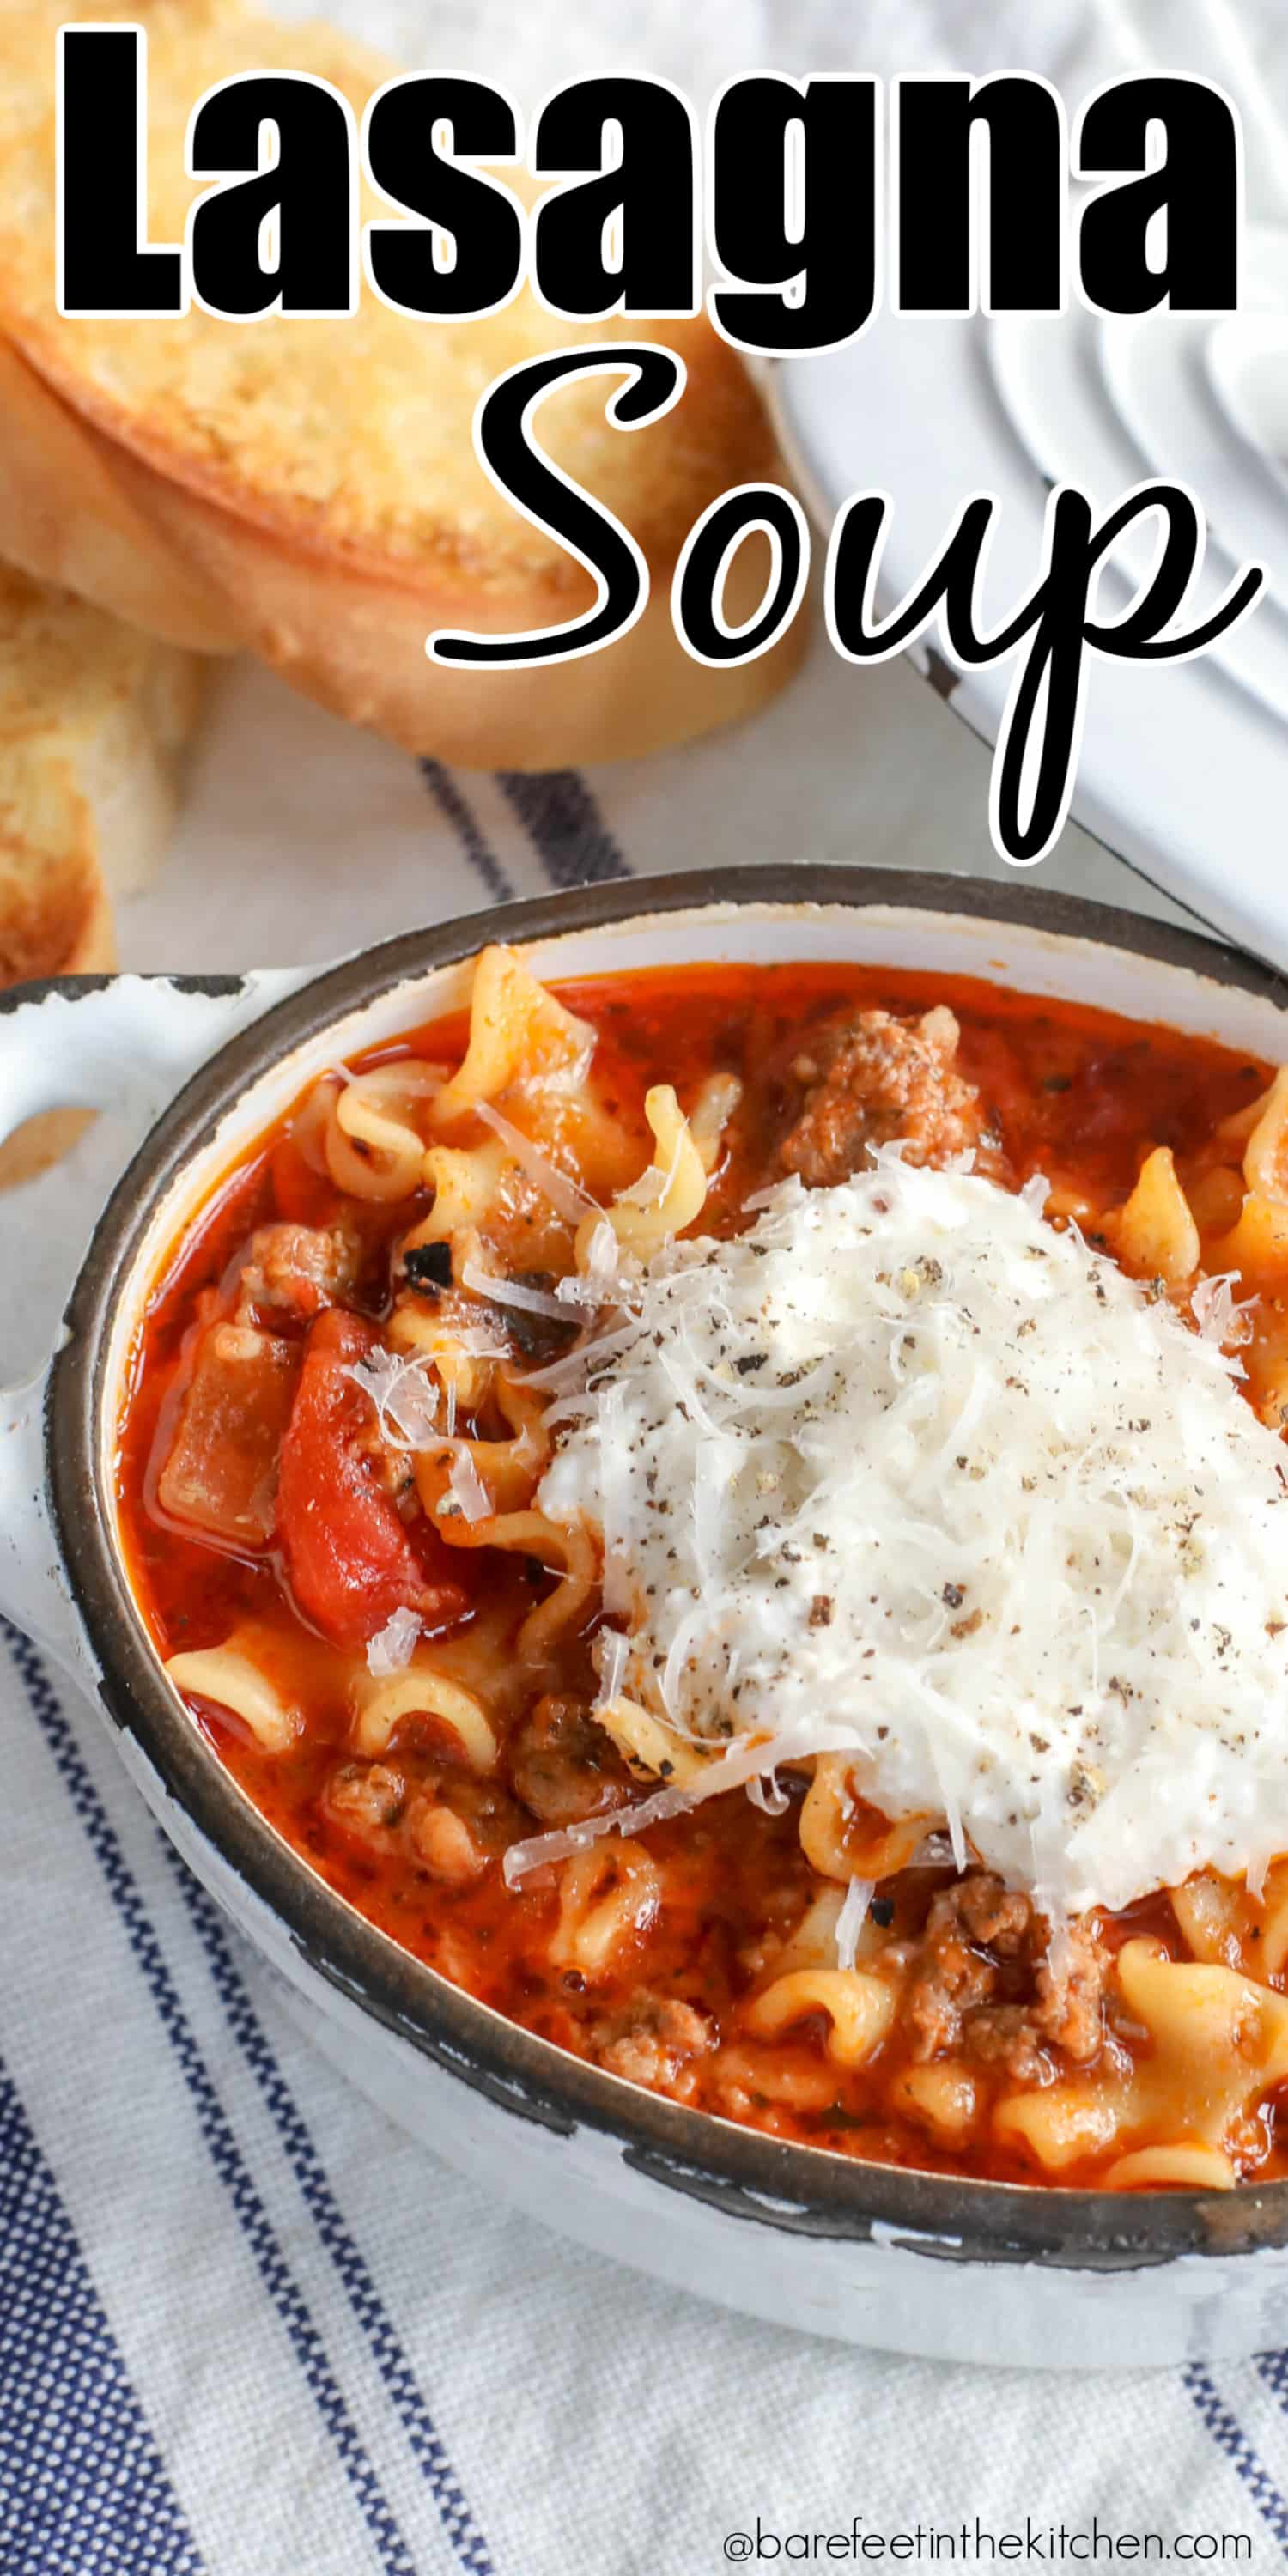 Lasagna Soup is a hearty dinner that gets cheers whenever we make it!